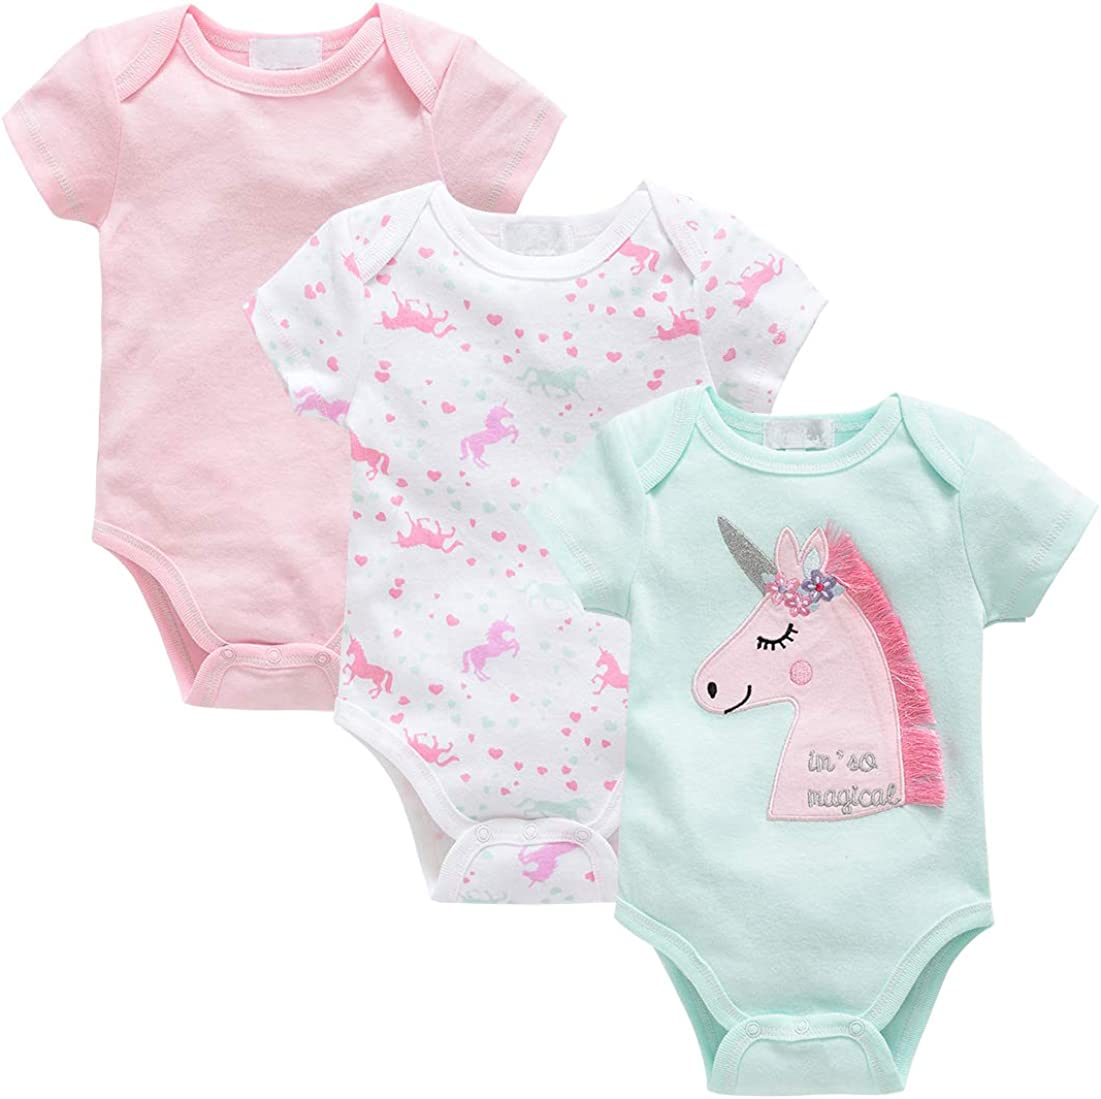 3 Pack 0-12 Month kavkas Baby Bodysuit Cute Short Sleeve Onesies Coverall Soft Cotton Undershirt for Toddler Infant Boys and Girls